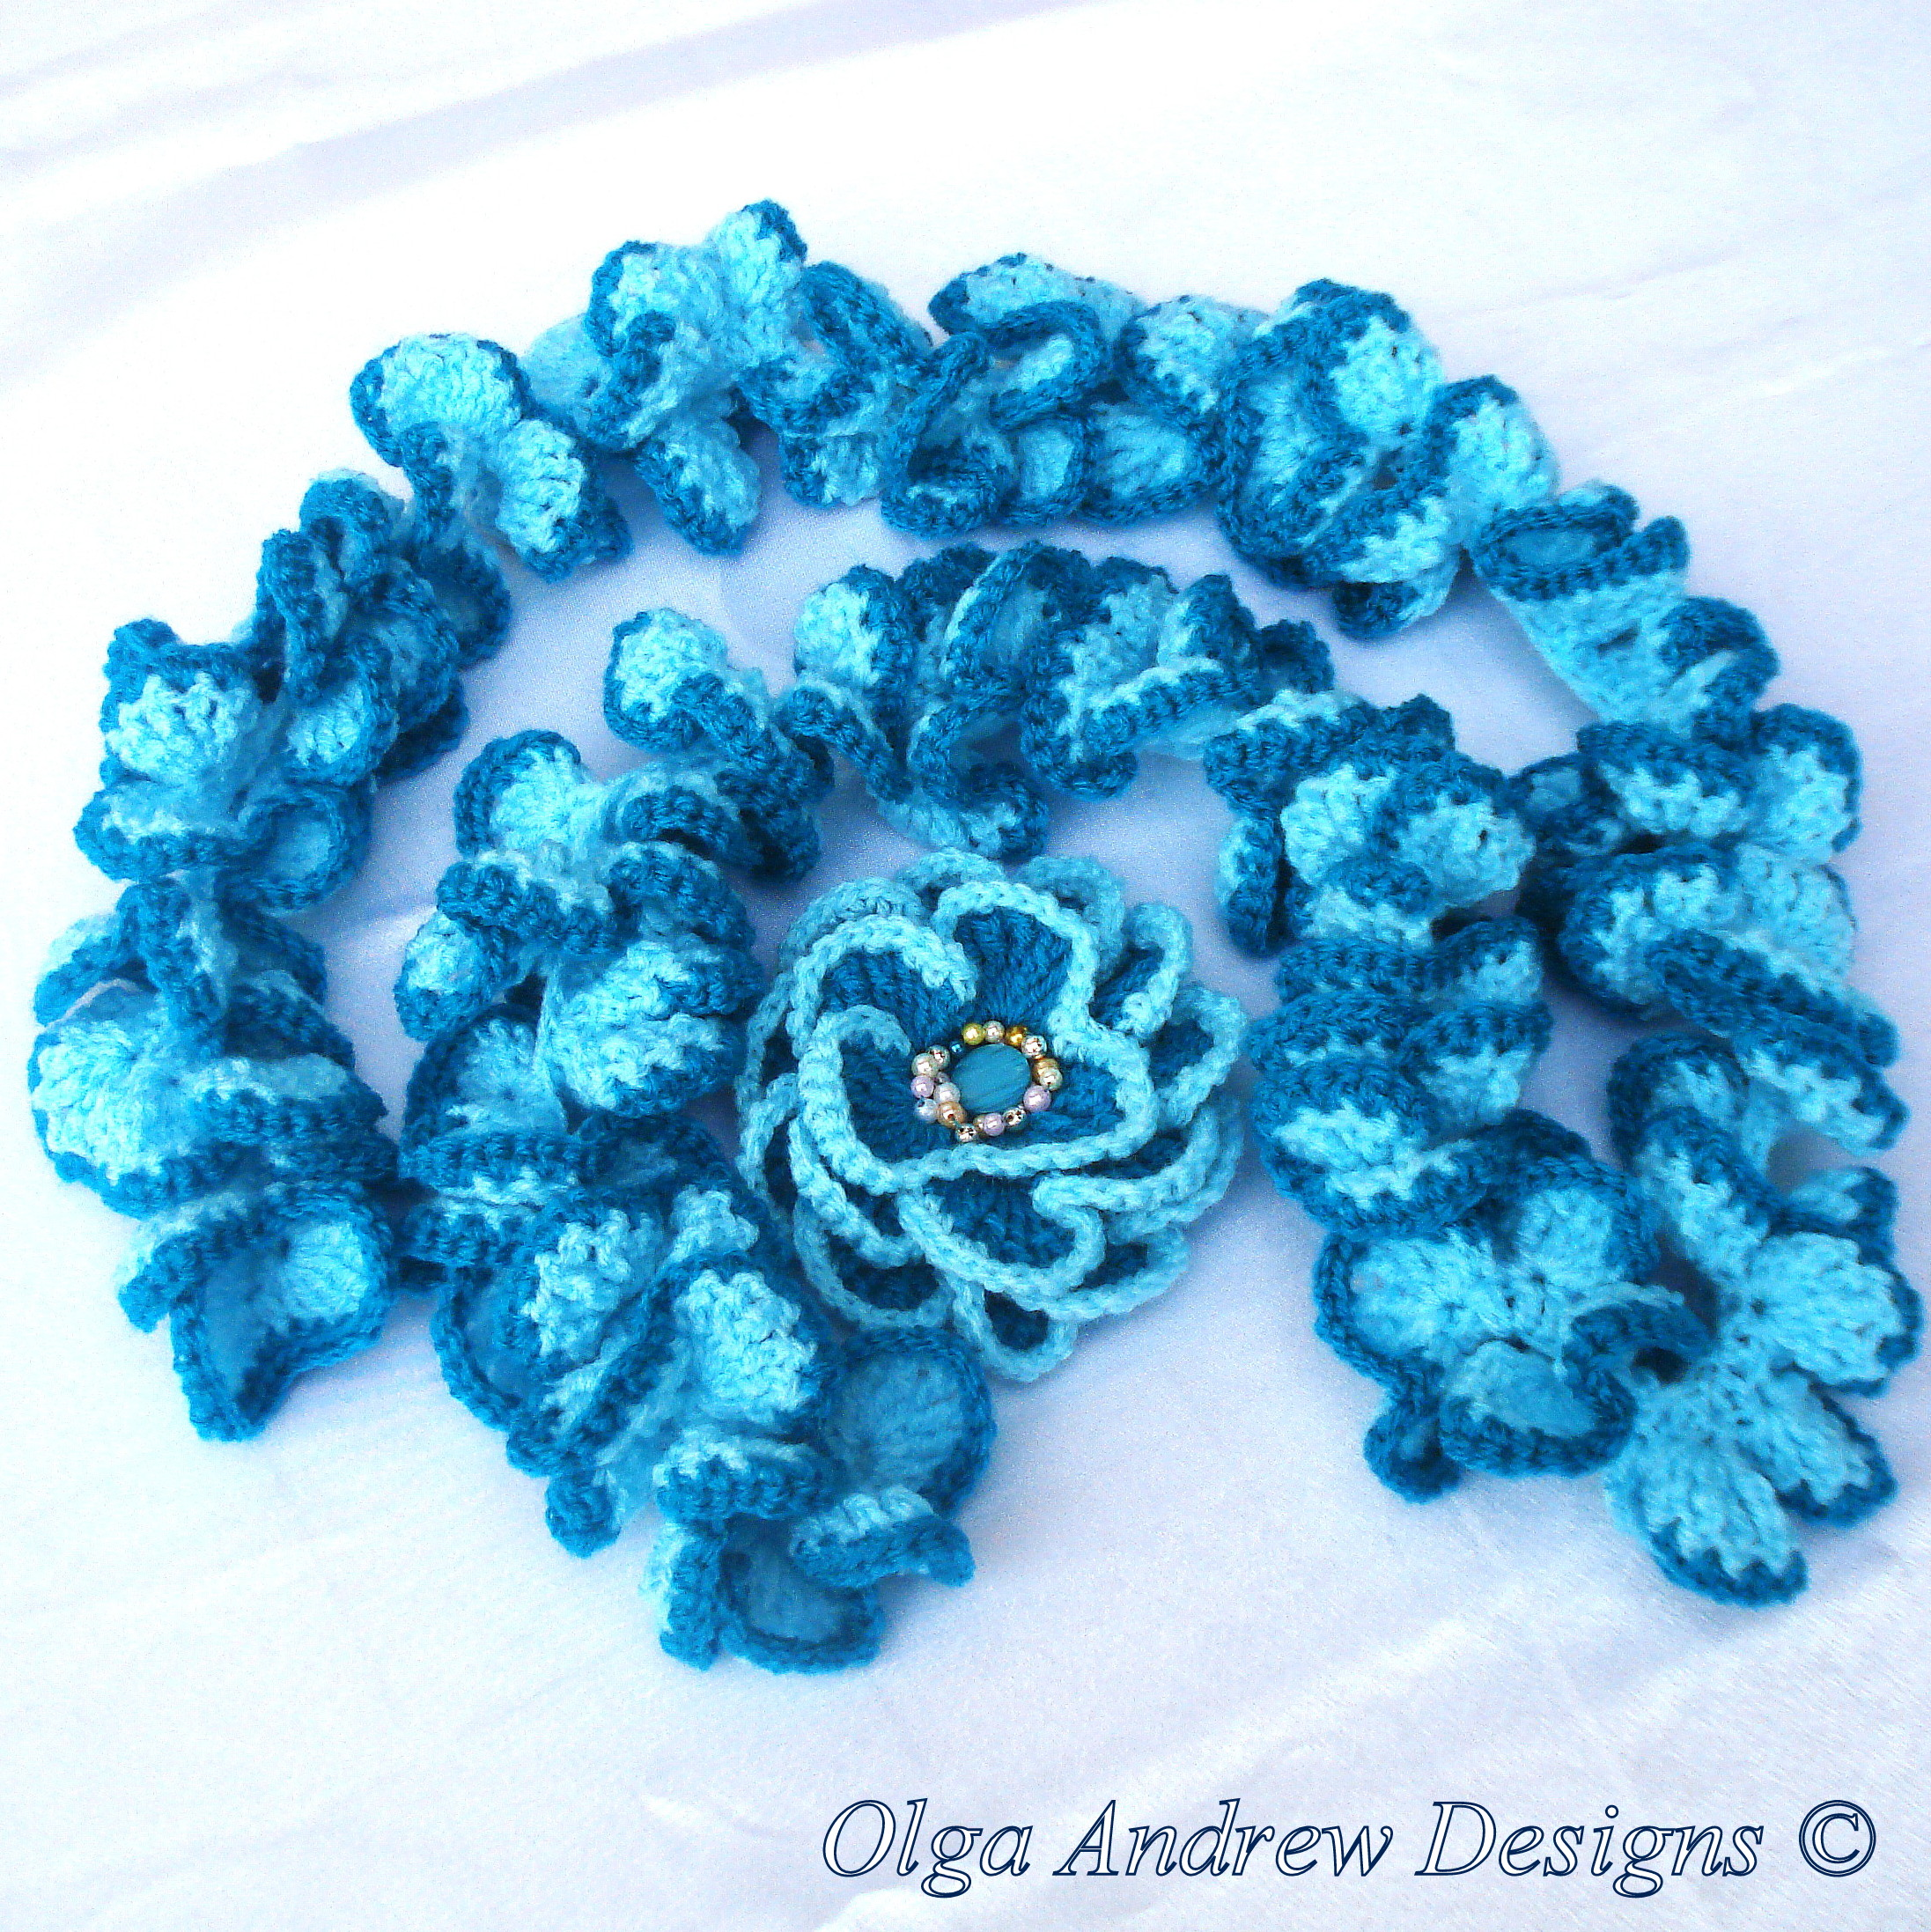 Ruffle Scarf And Brooch Camomile Crochet Pattern 029